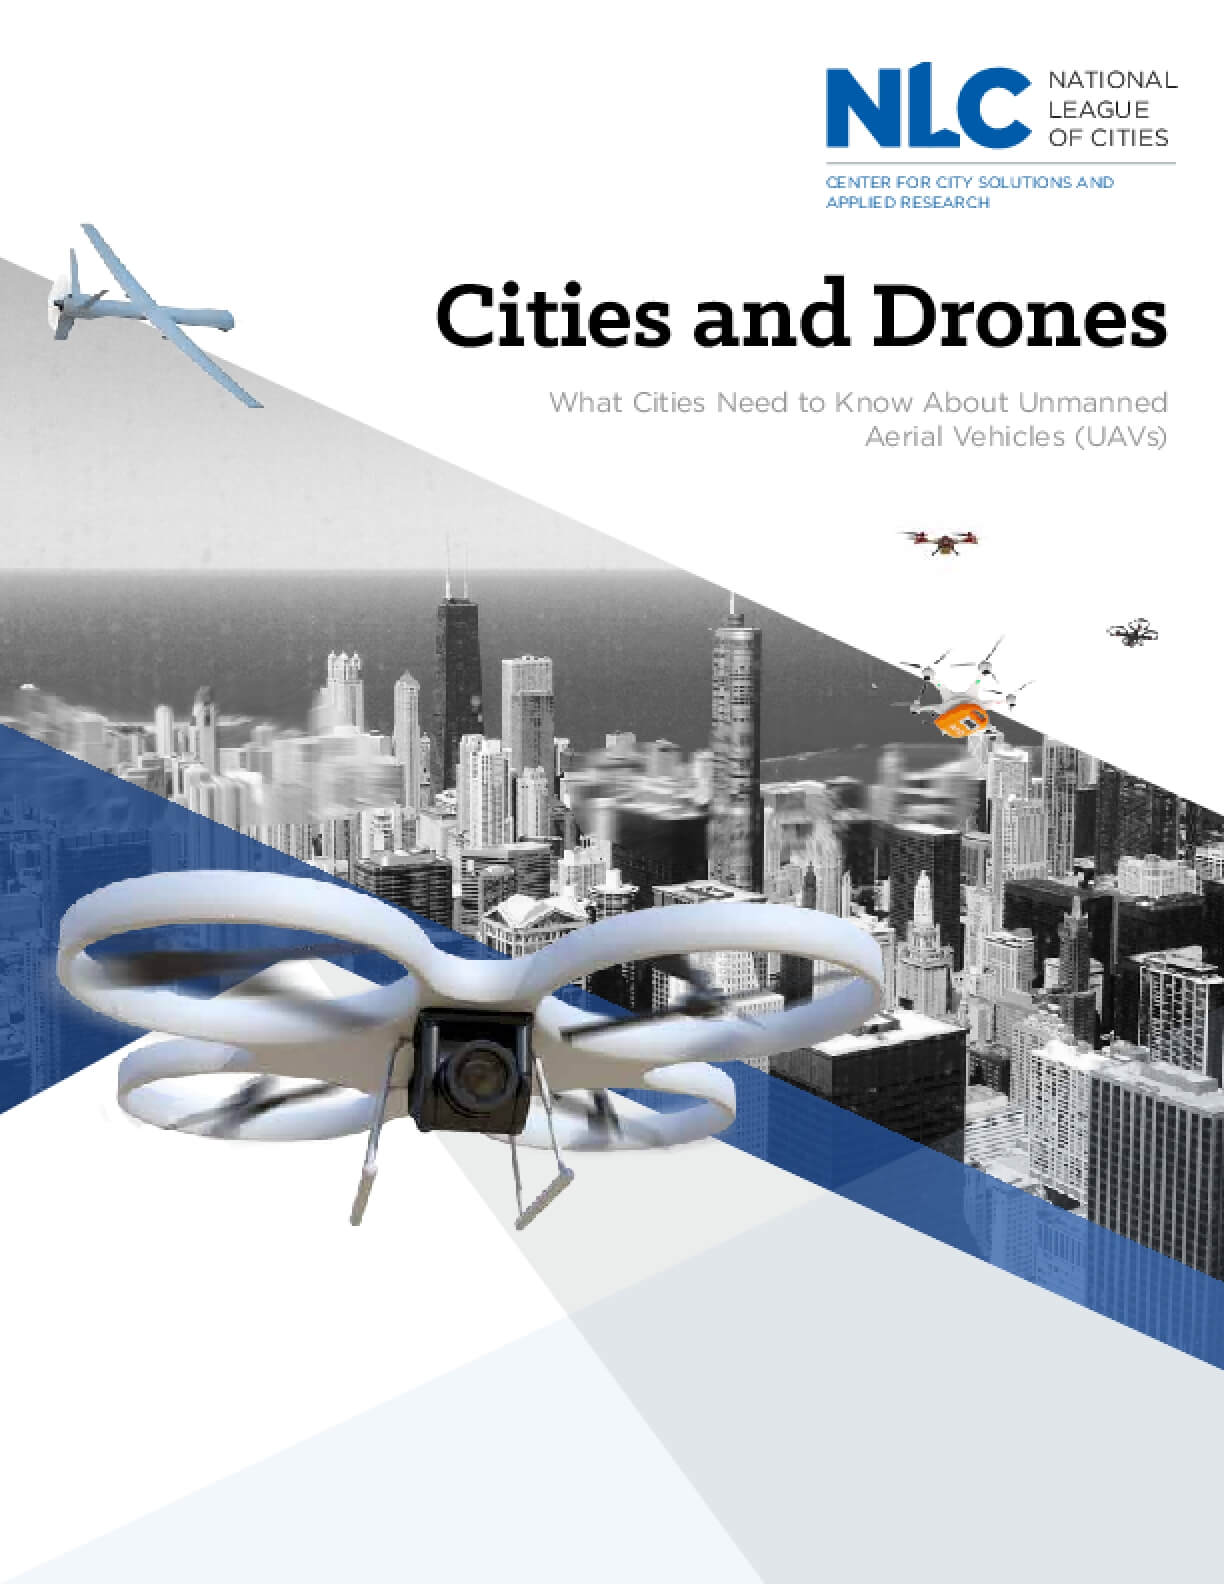 Cities and Drones: What Cities Need to Know about Unmanned Aerial Vehicles (UAVs)